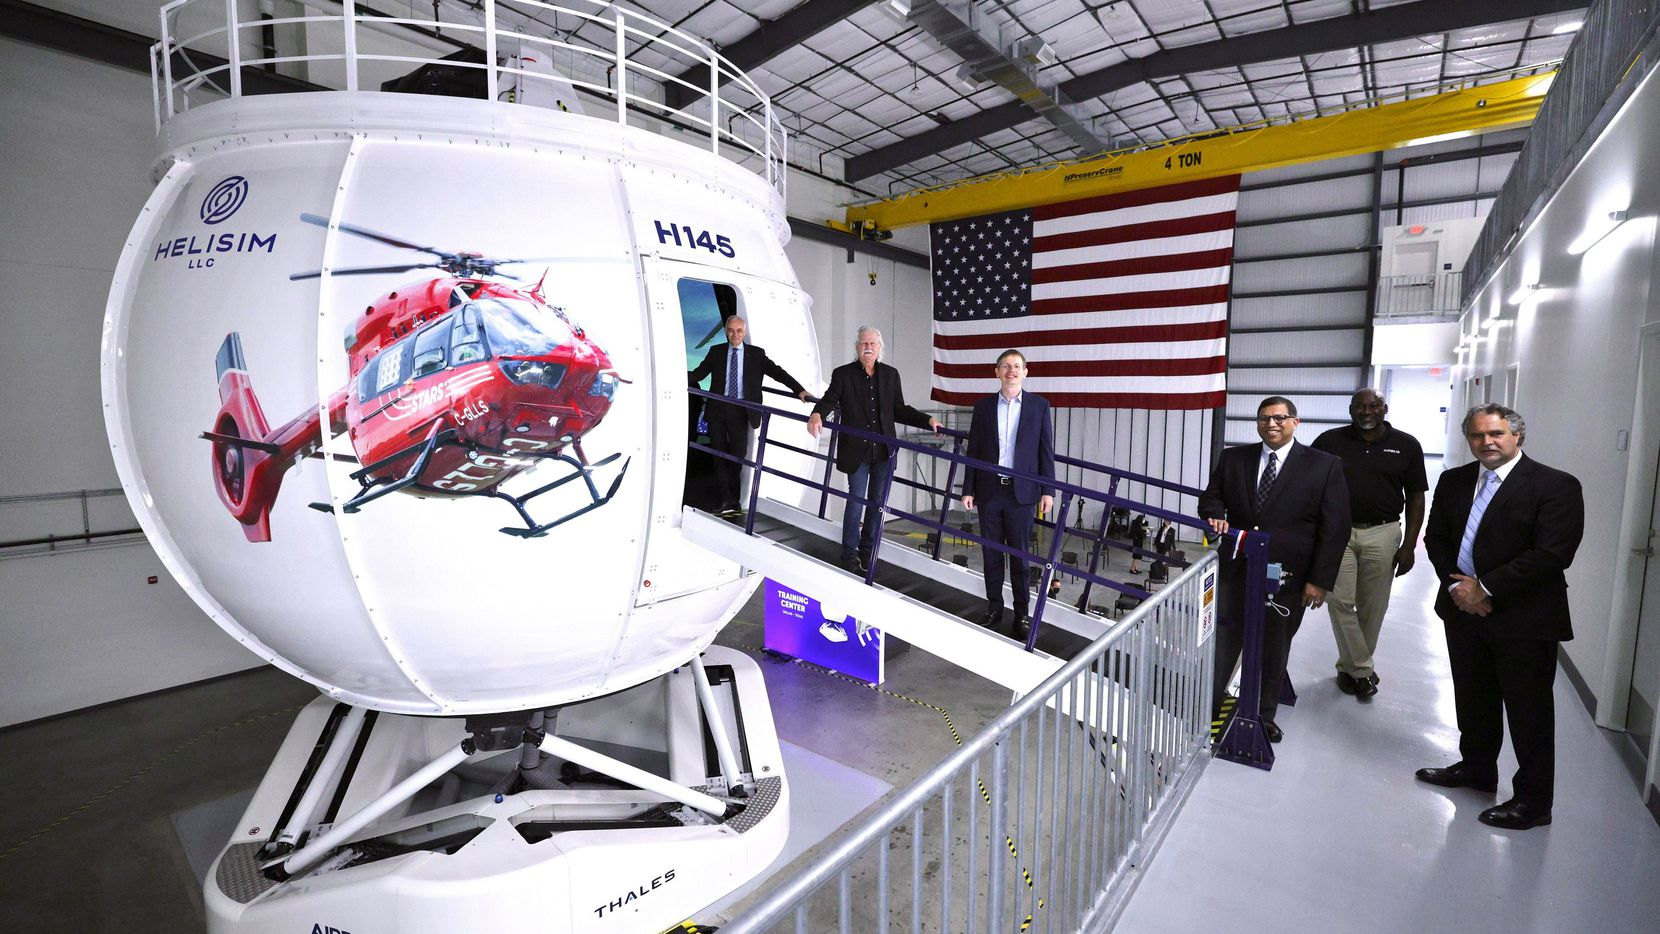 Officials, including Grand Prairie mayor Ron Jenson who is second from the left, stand in front of a newly operational flight simulator located at Airbus Helicopters headquarters.